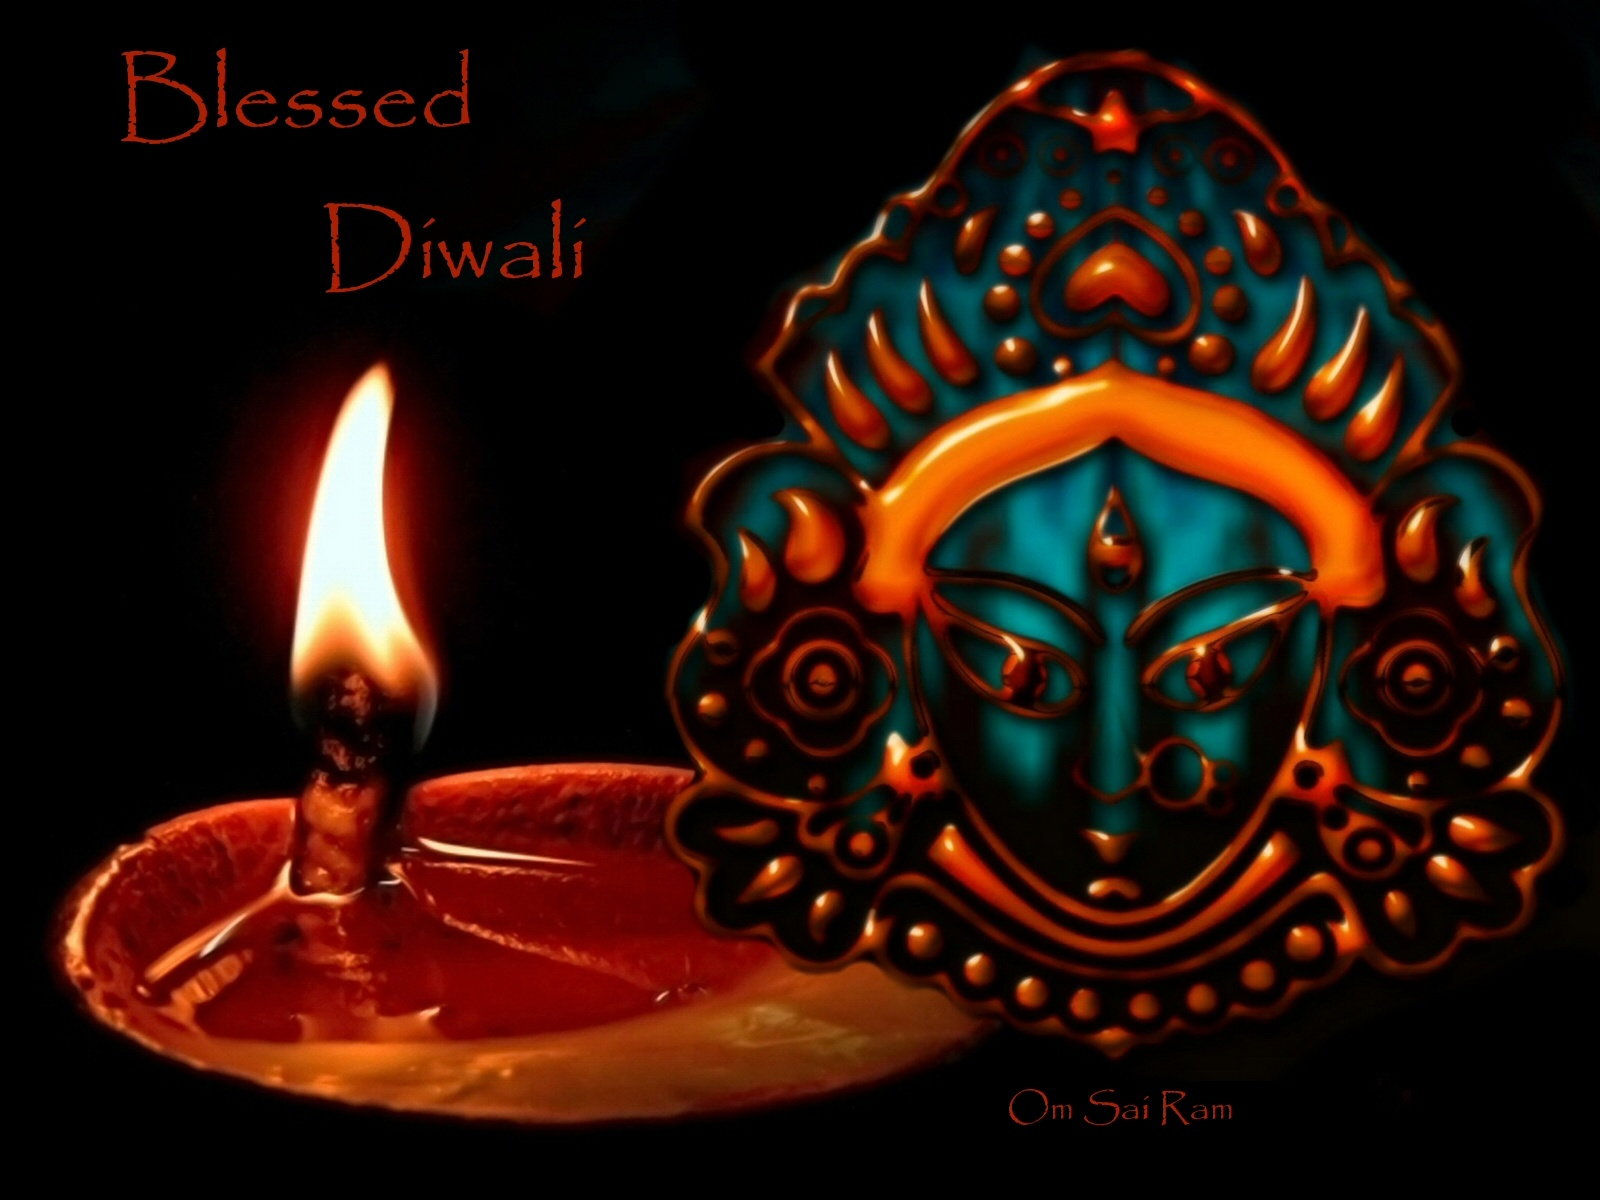 blessing Diwali Greetings Diwali Comments Diwali Animated Graphics Hi5 Myspace